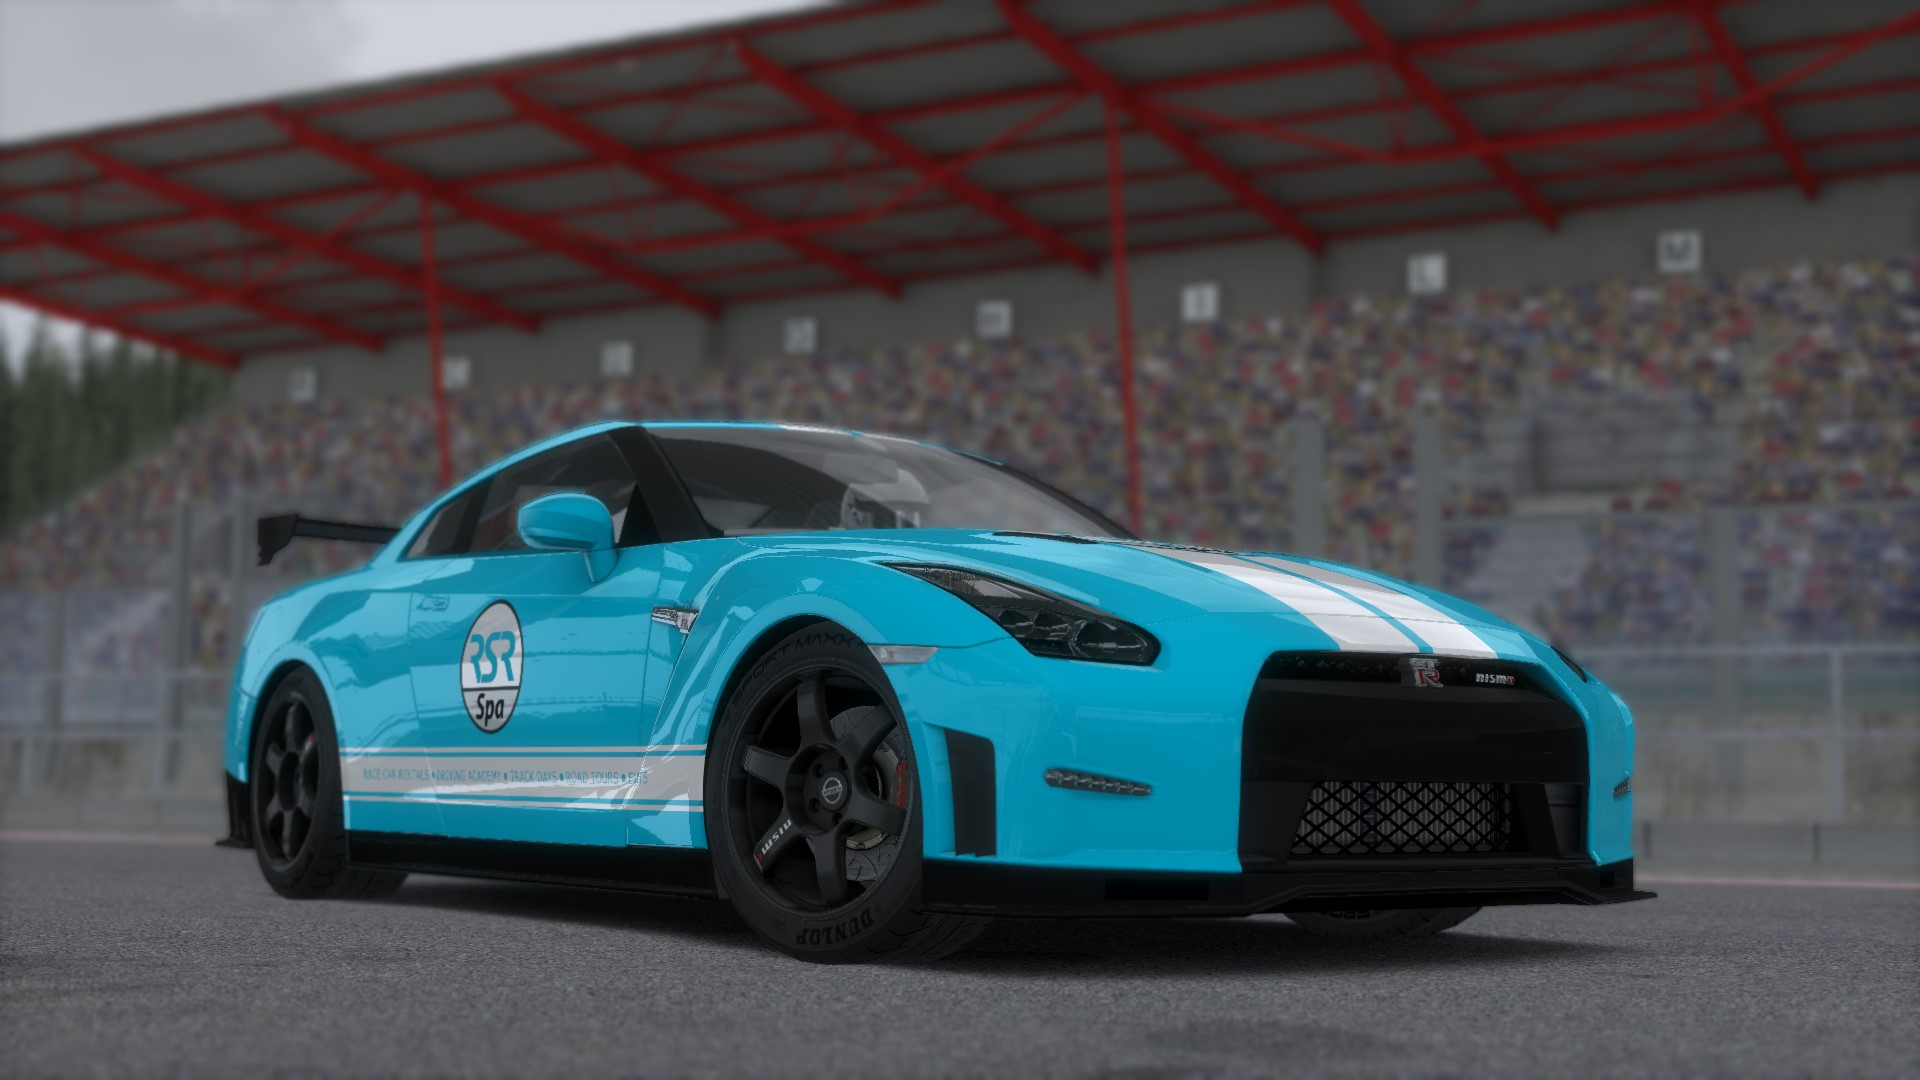 Screenshot_ks_nissan_gtr_spa_8-9-115-19-28-4.jpg